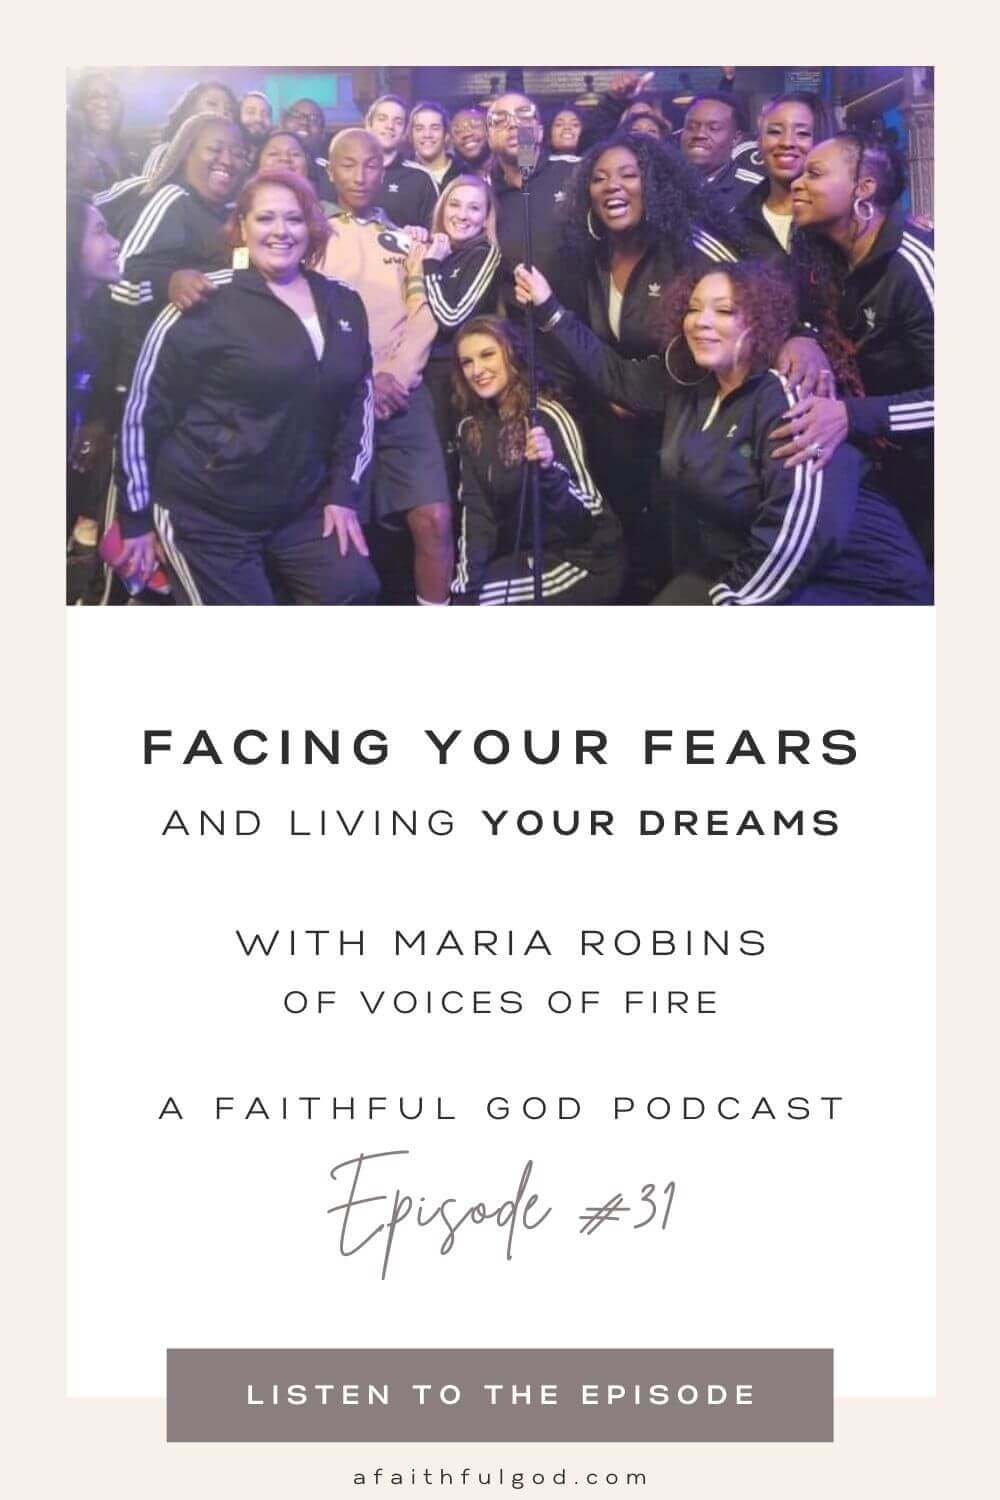 Facing Your Fears and Living Your Dreams with Maria Robins from the Netflix show, Voices of Fire